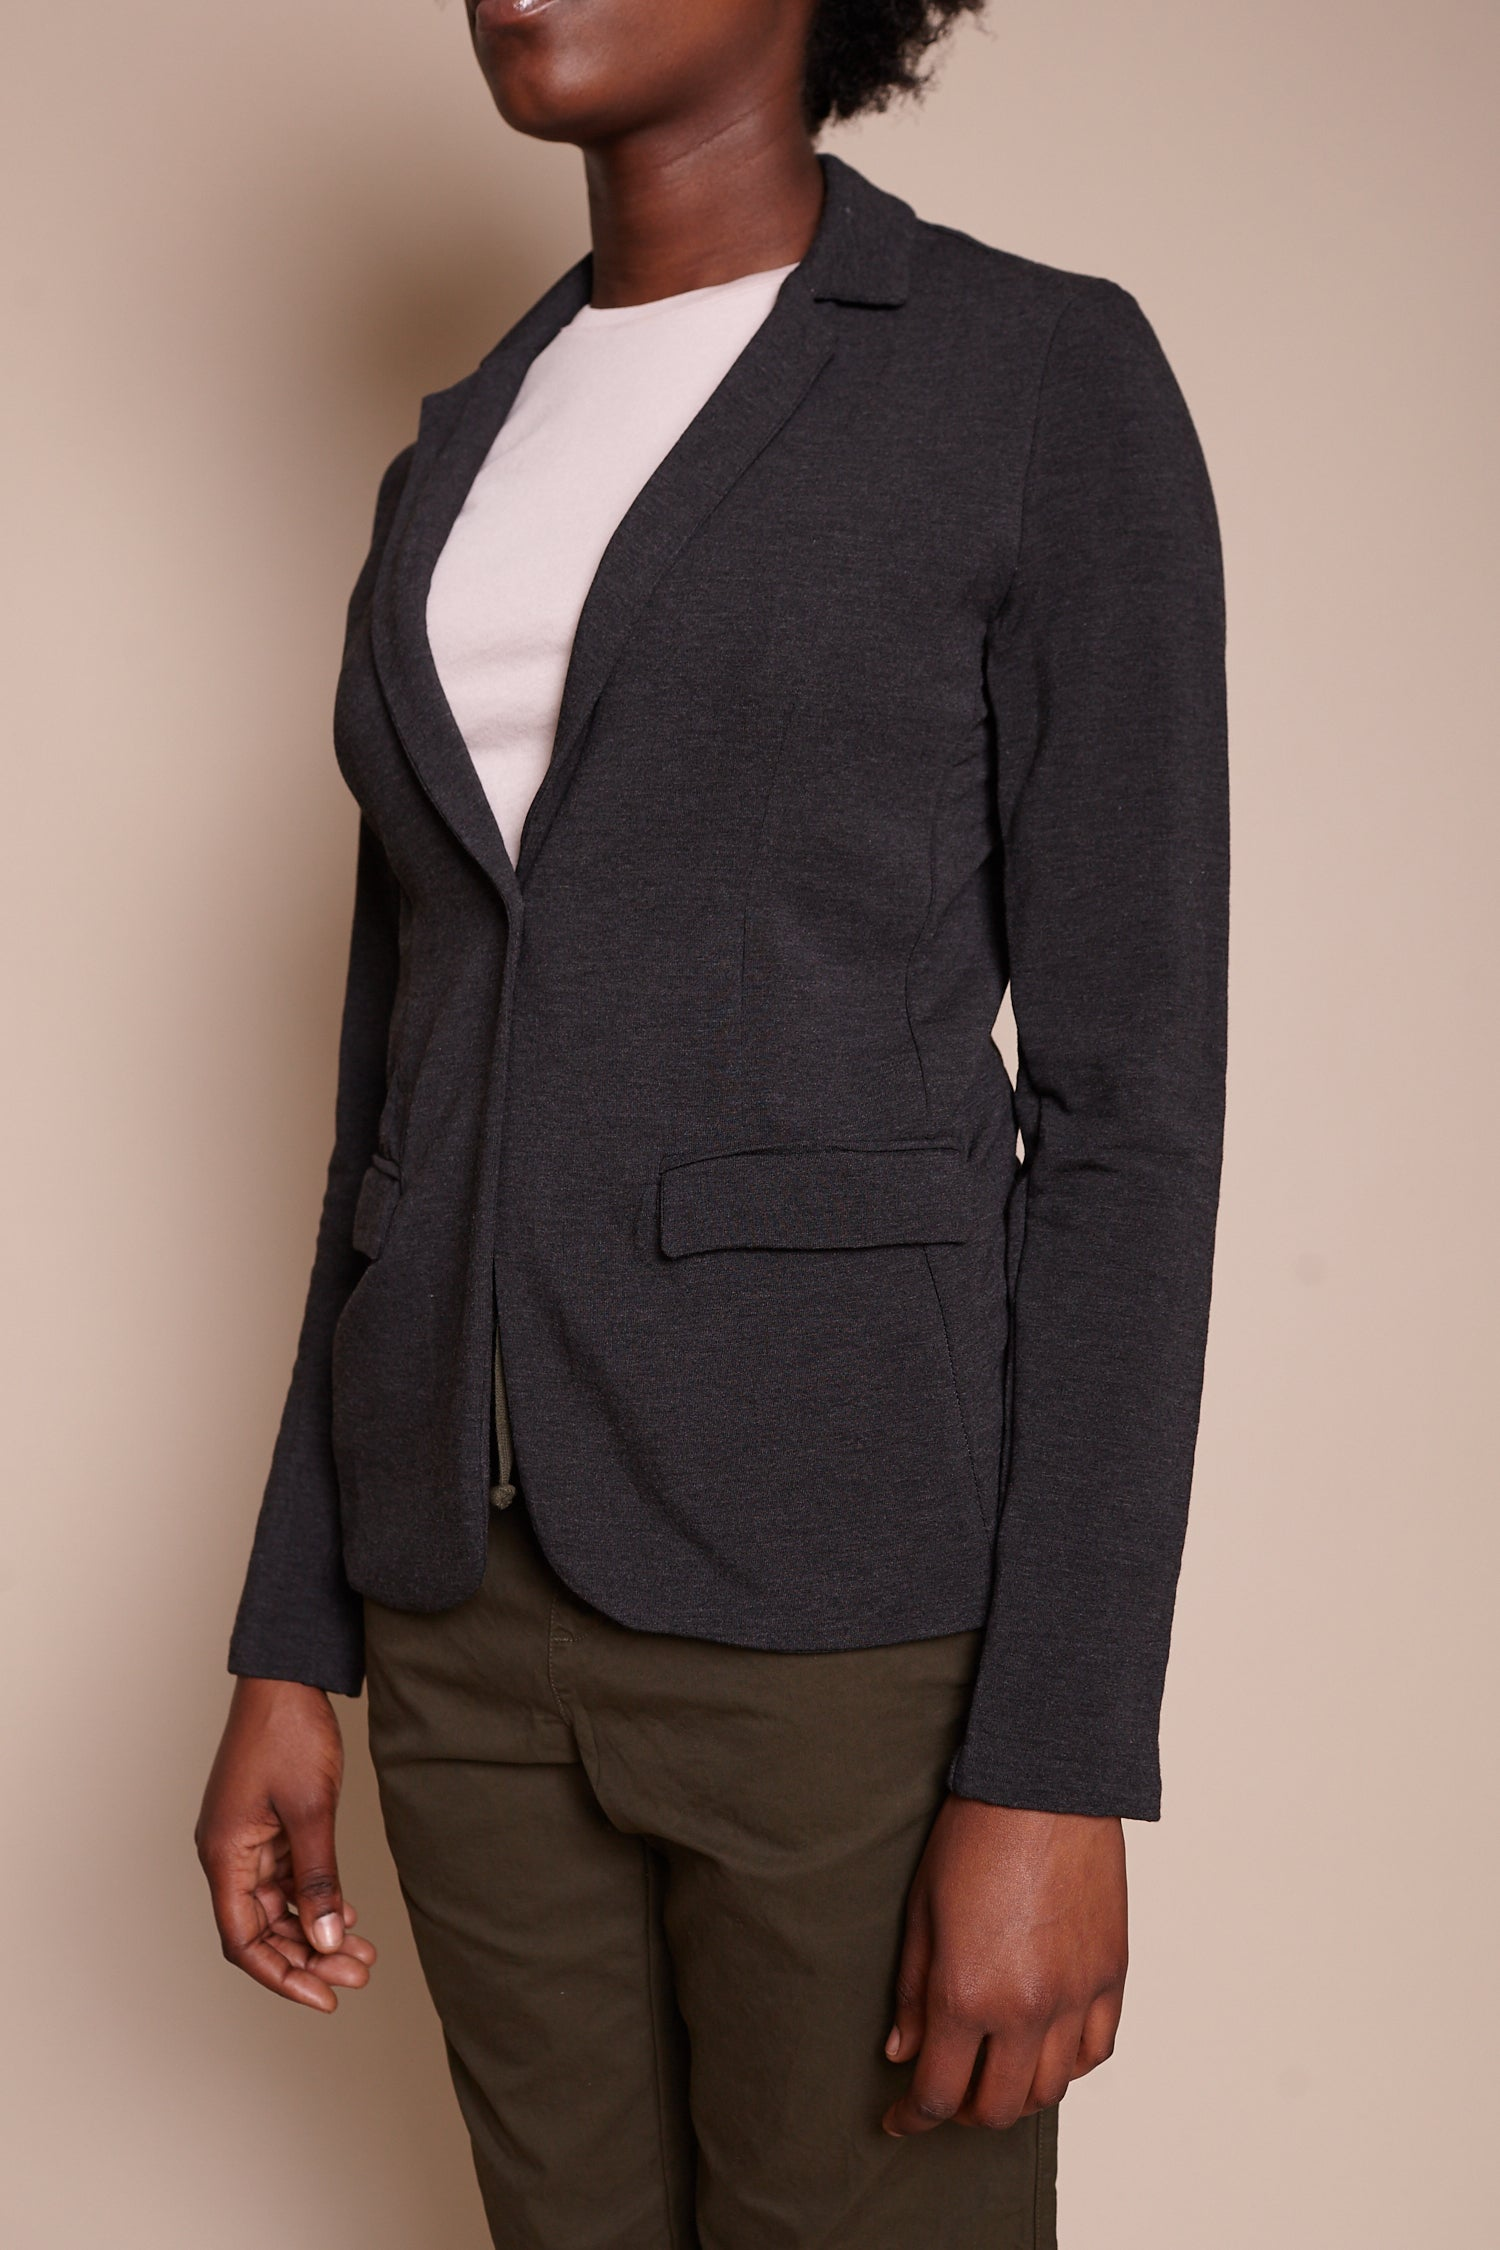 Majestic French Terry Blazer in Anthracite Chine - Vert & Vogue